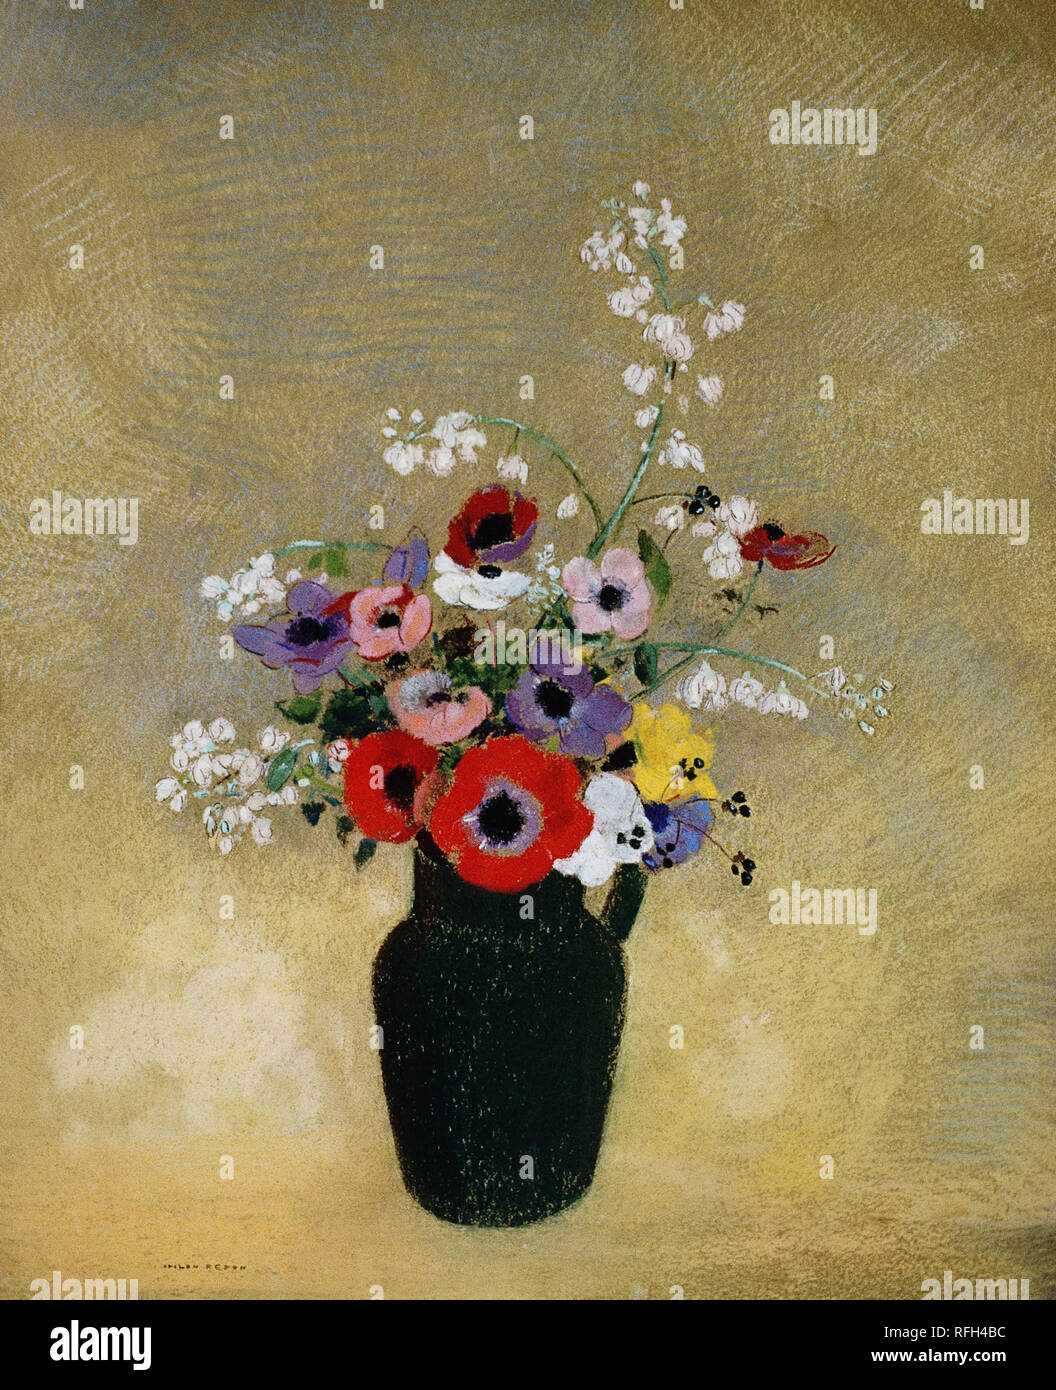 ODILON REDON, VASE OF FLOWERS 2.jpg - RFH4CE Stock Photo